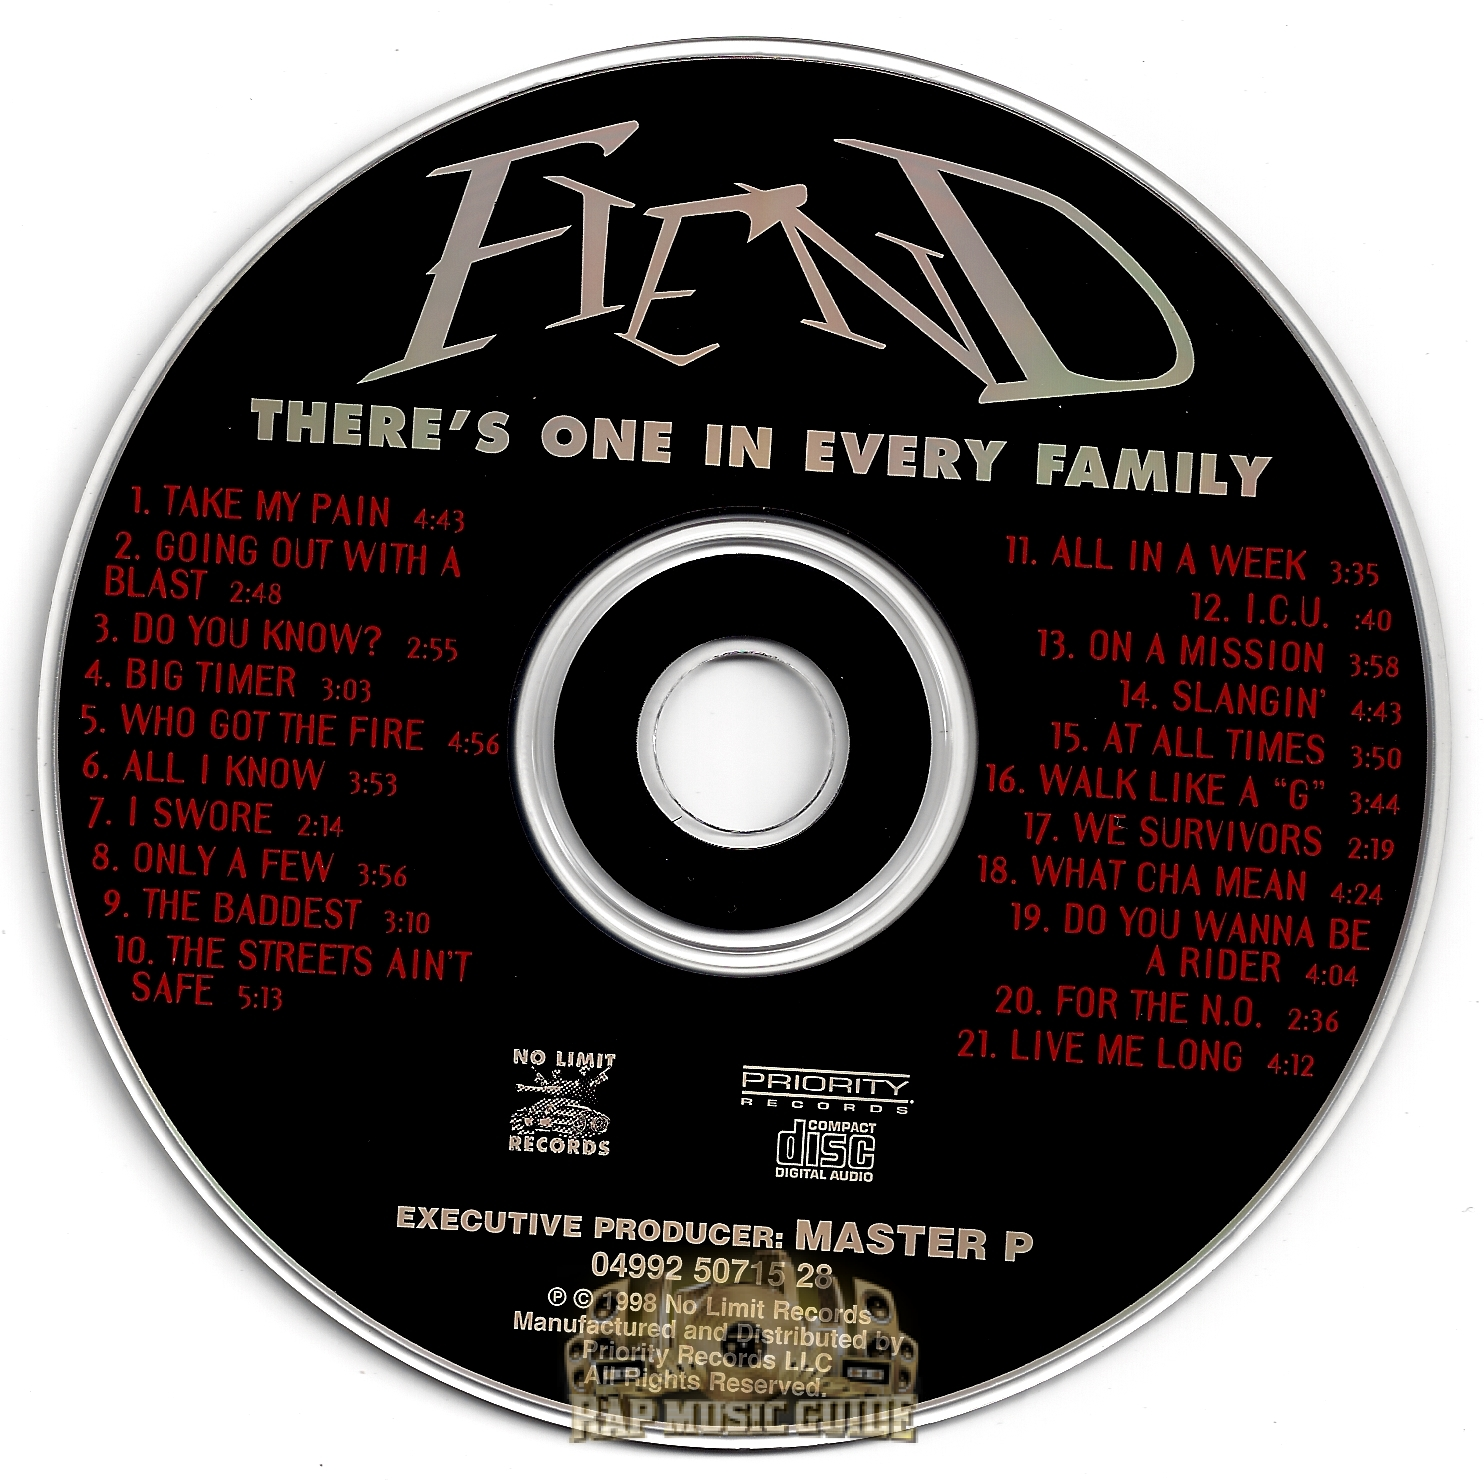 Fiend - There's One In Every Family: CD | Rap Music Guide